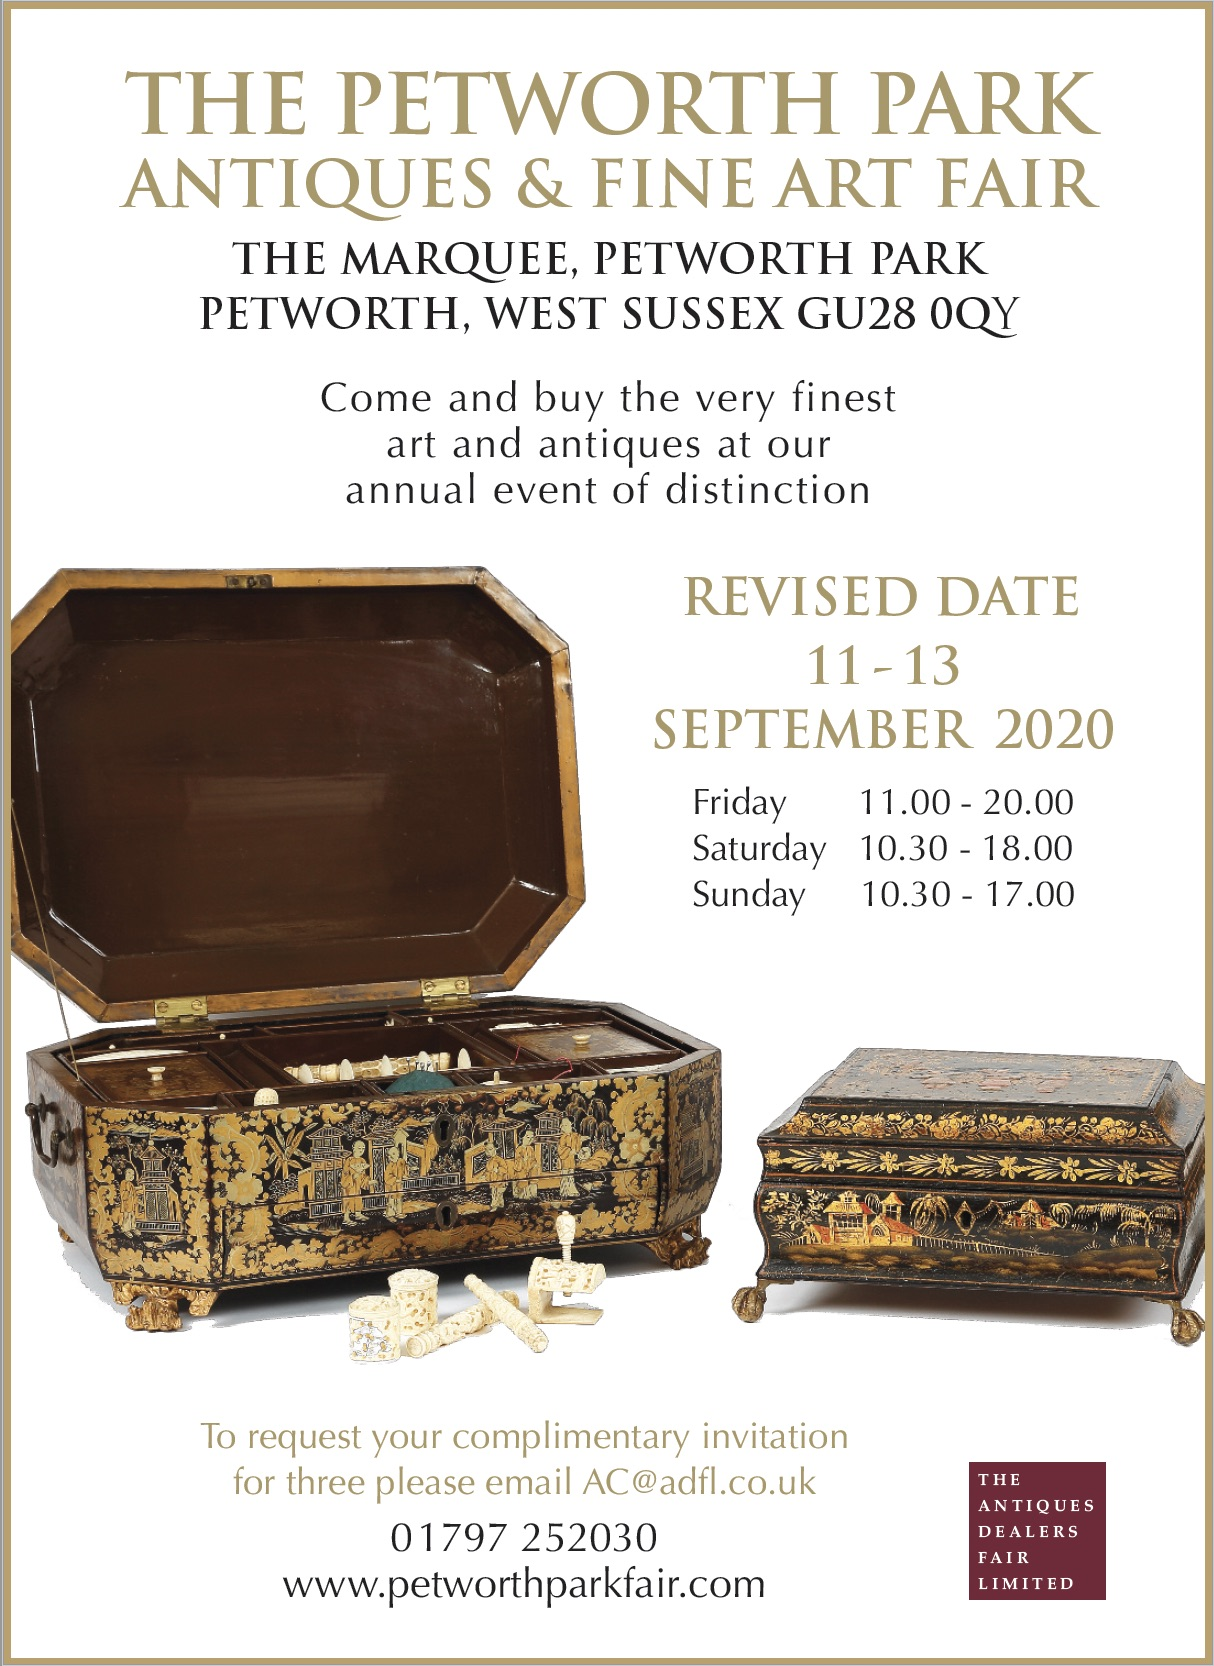 Petworth Park Antiques & Fine Art Fair